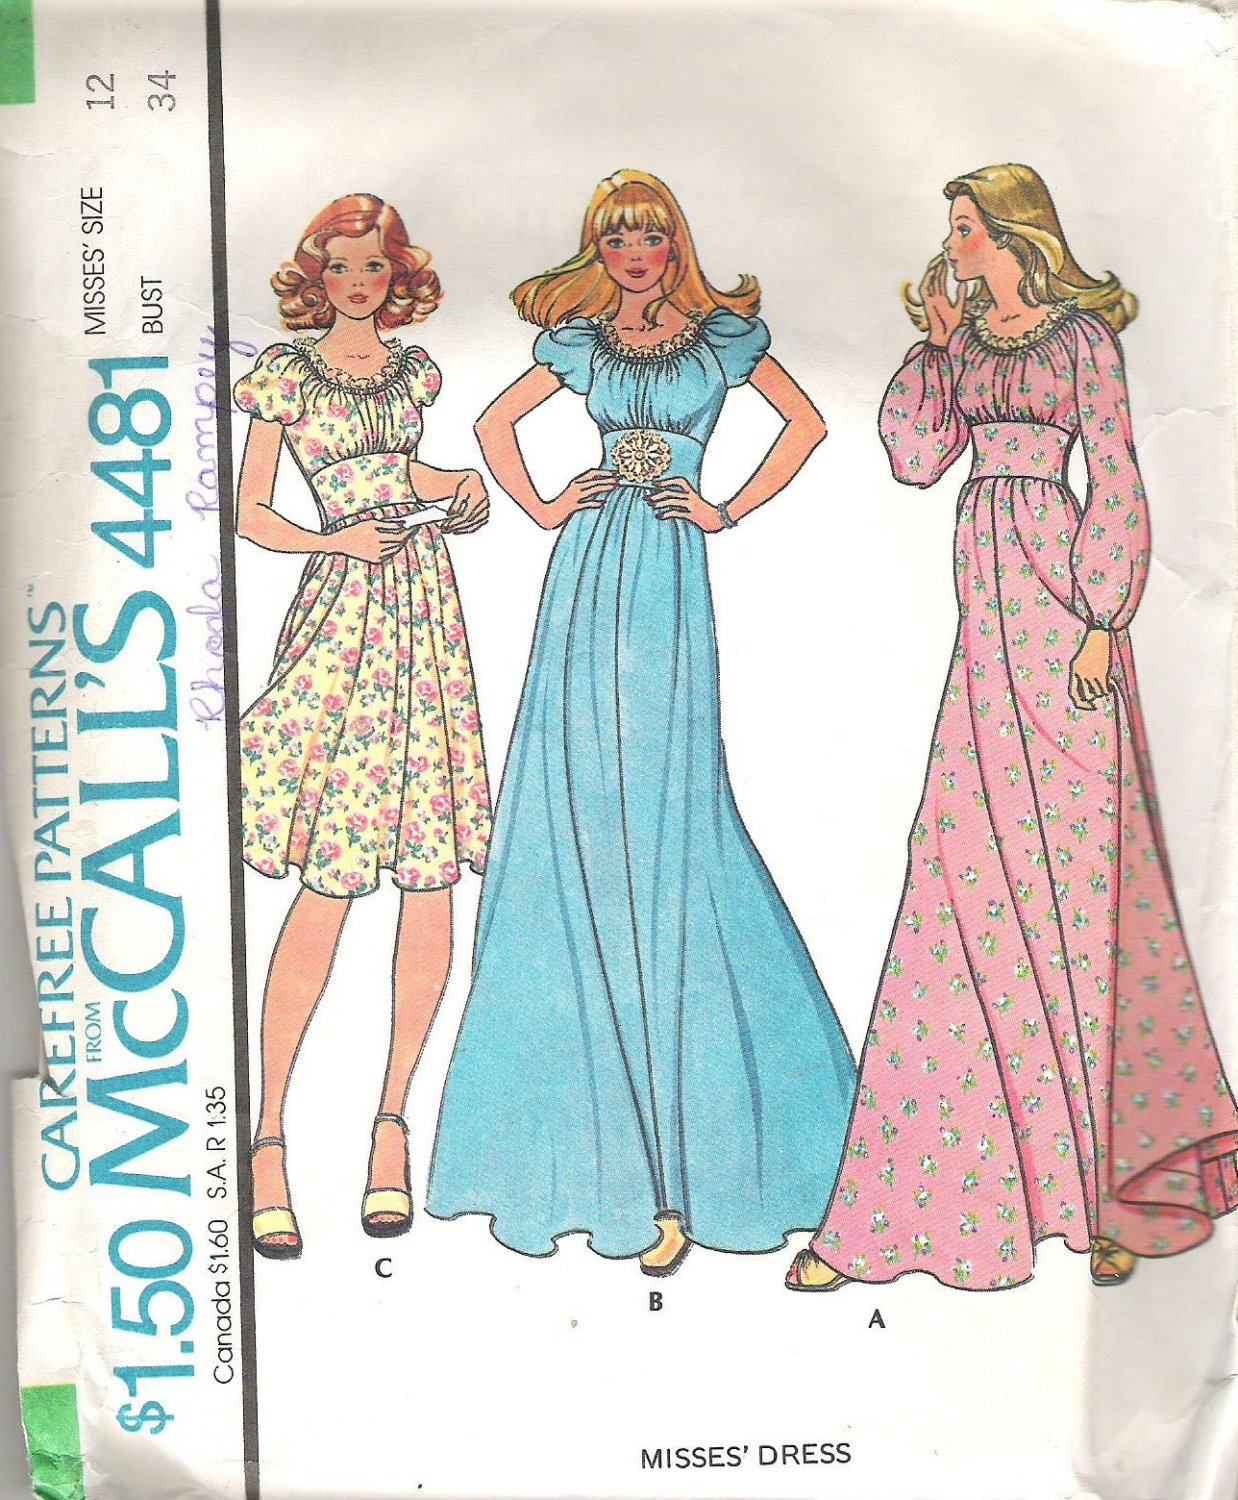 1975 McCalls 4481 Pattern Vintage 70s Long/Short Dress Peasant Neckline Midriff Band Size 12 Cut